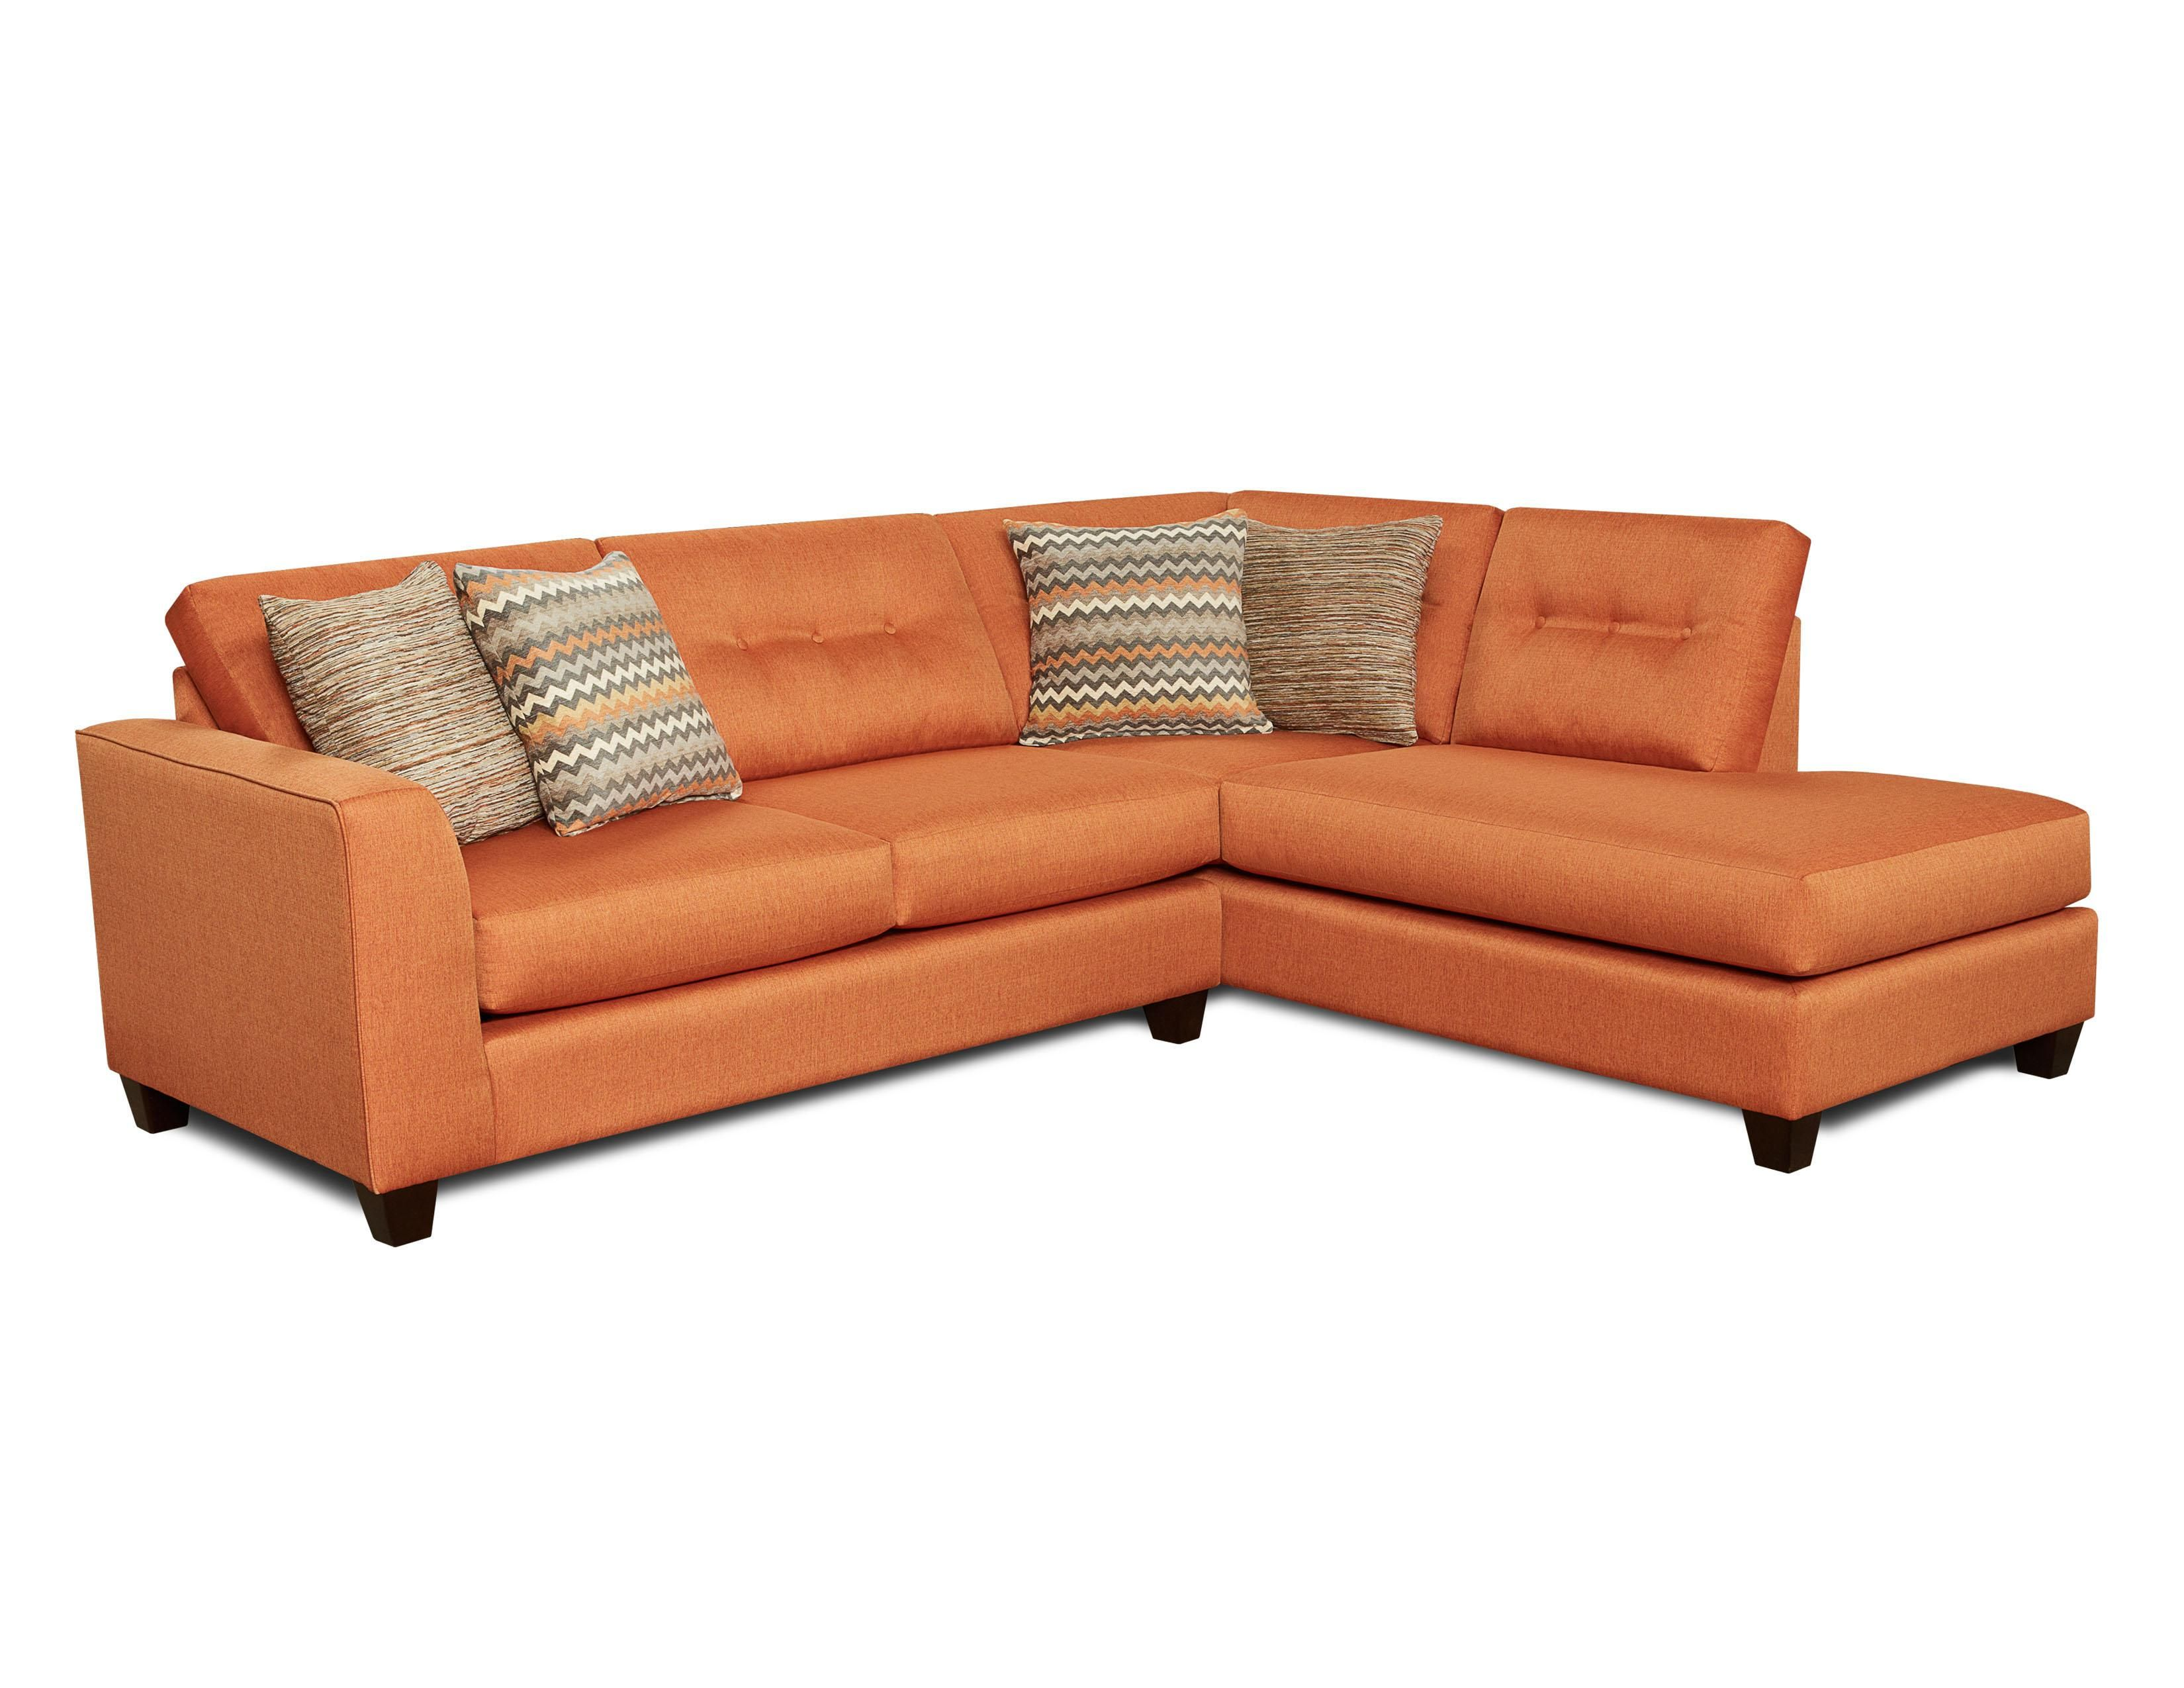 Pin By Jordan Barrett On Home Dreams Contemporary Sectional Sofa Fusion Furniture Sectional